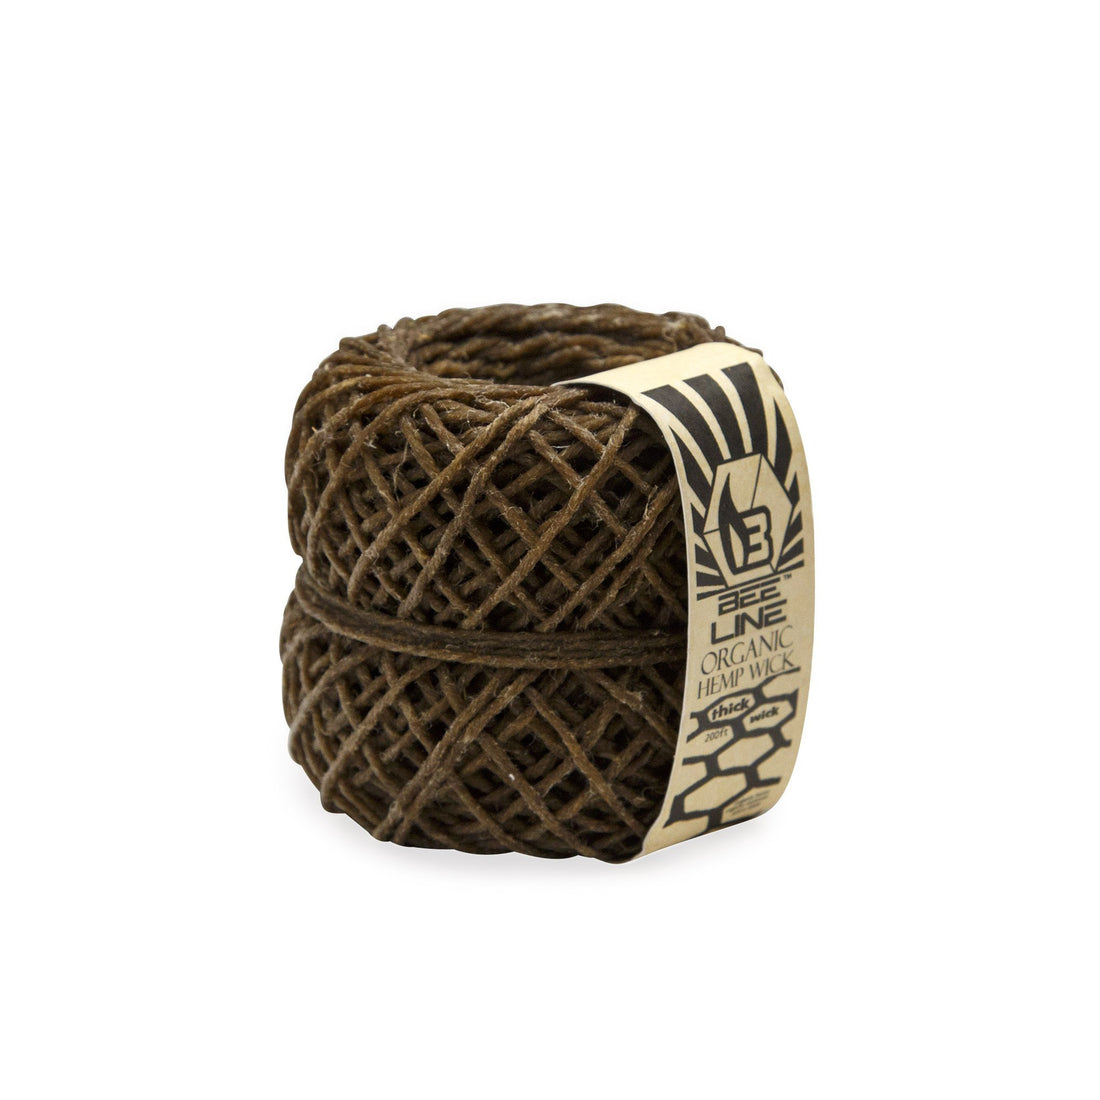 Bee Line Thick Hemp Wick Spool - 420 Science - The most trusted online smoke shop.